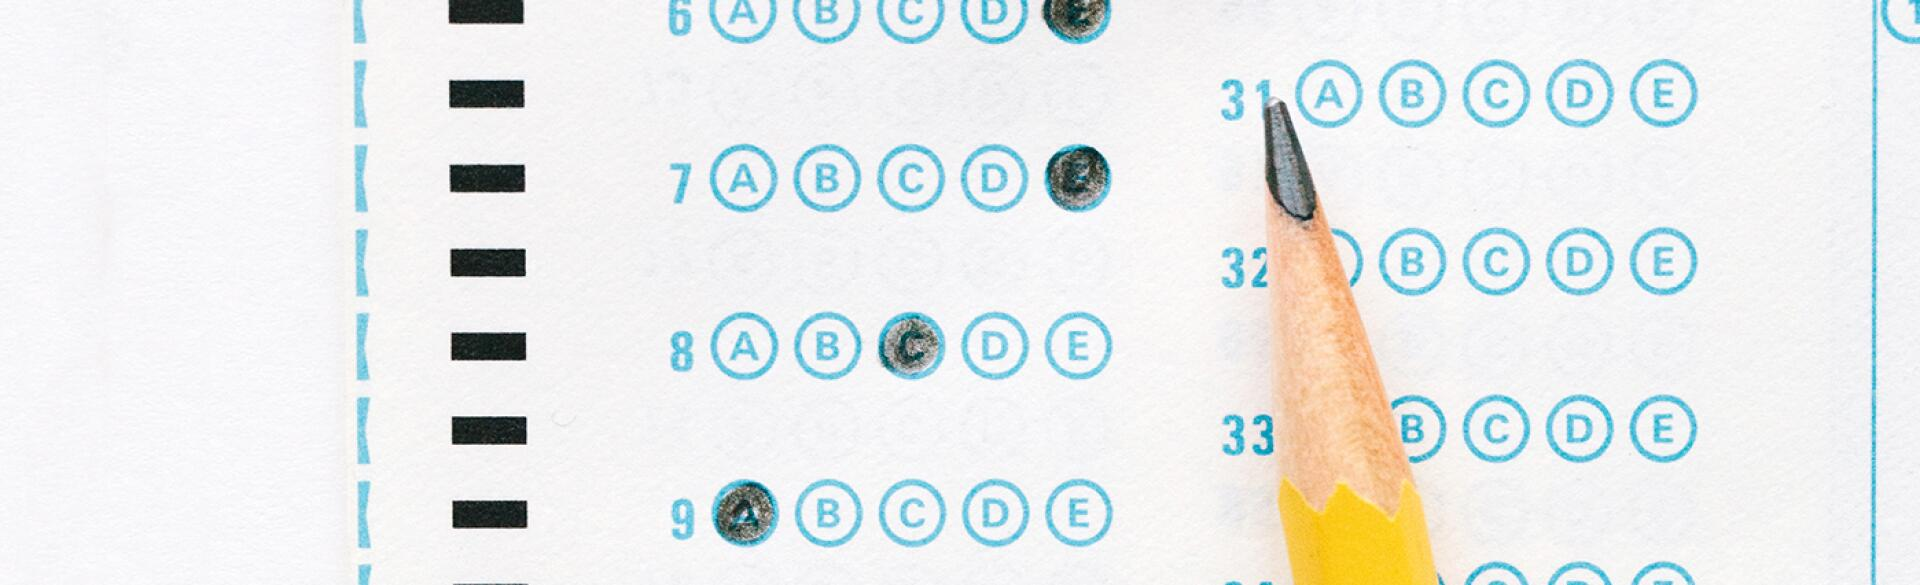 Photo of scantron bubble test with answers filled in.